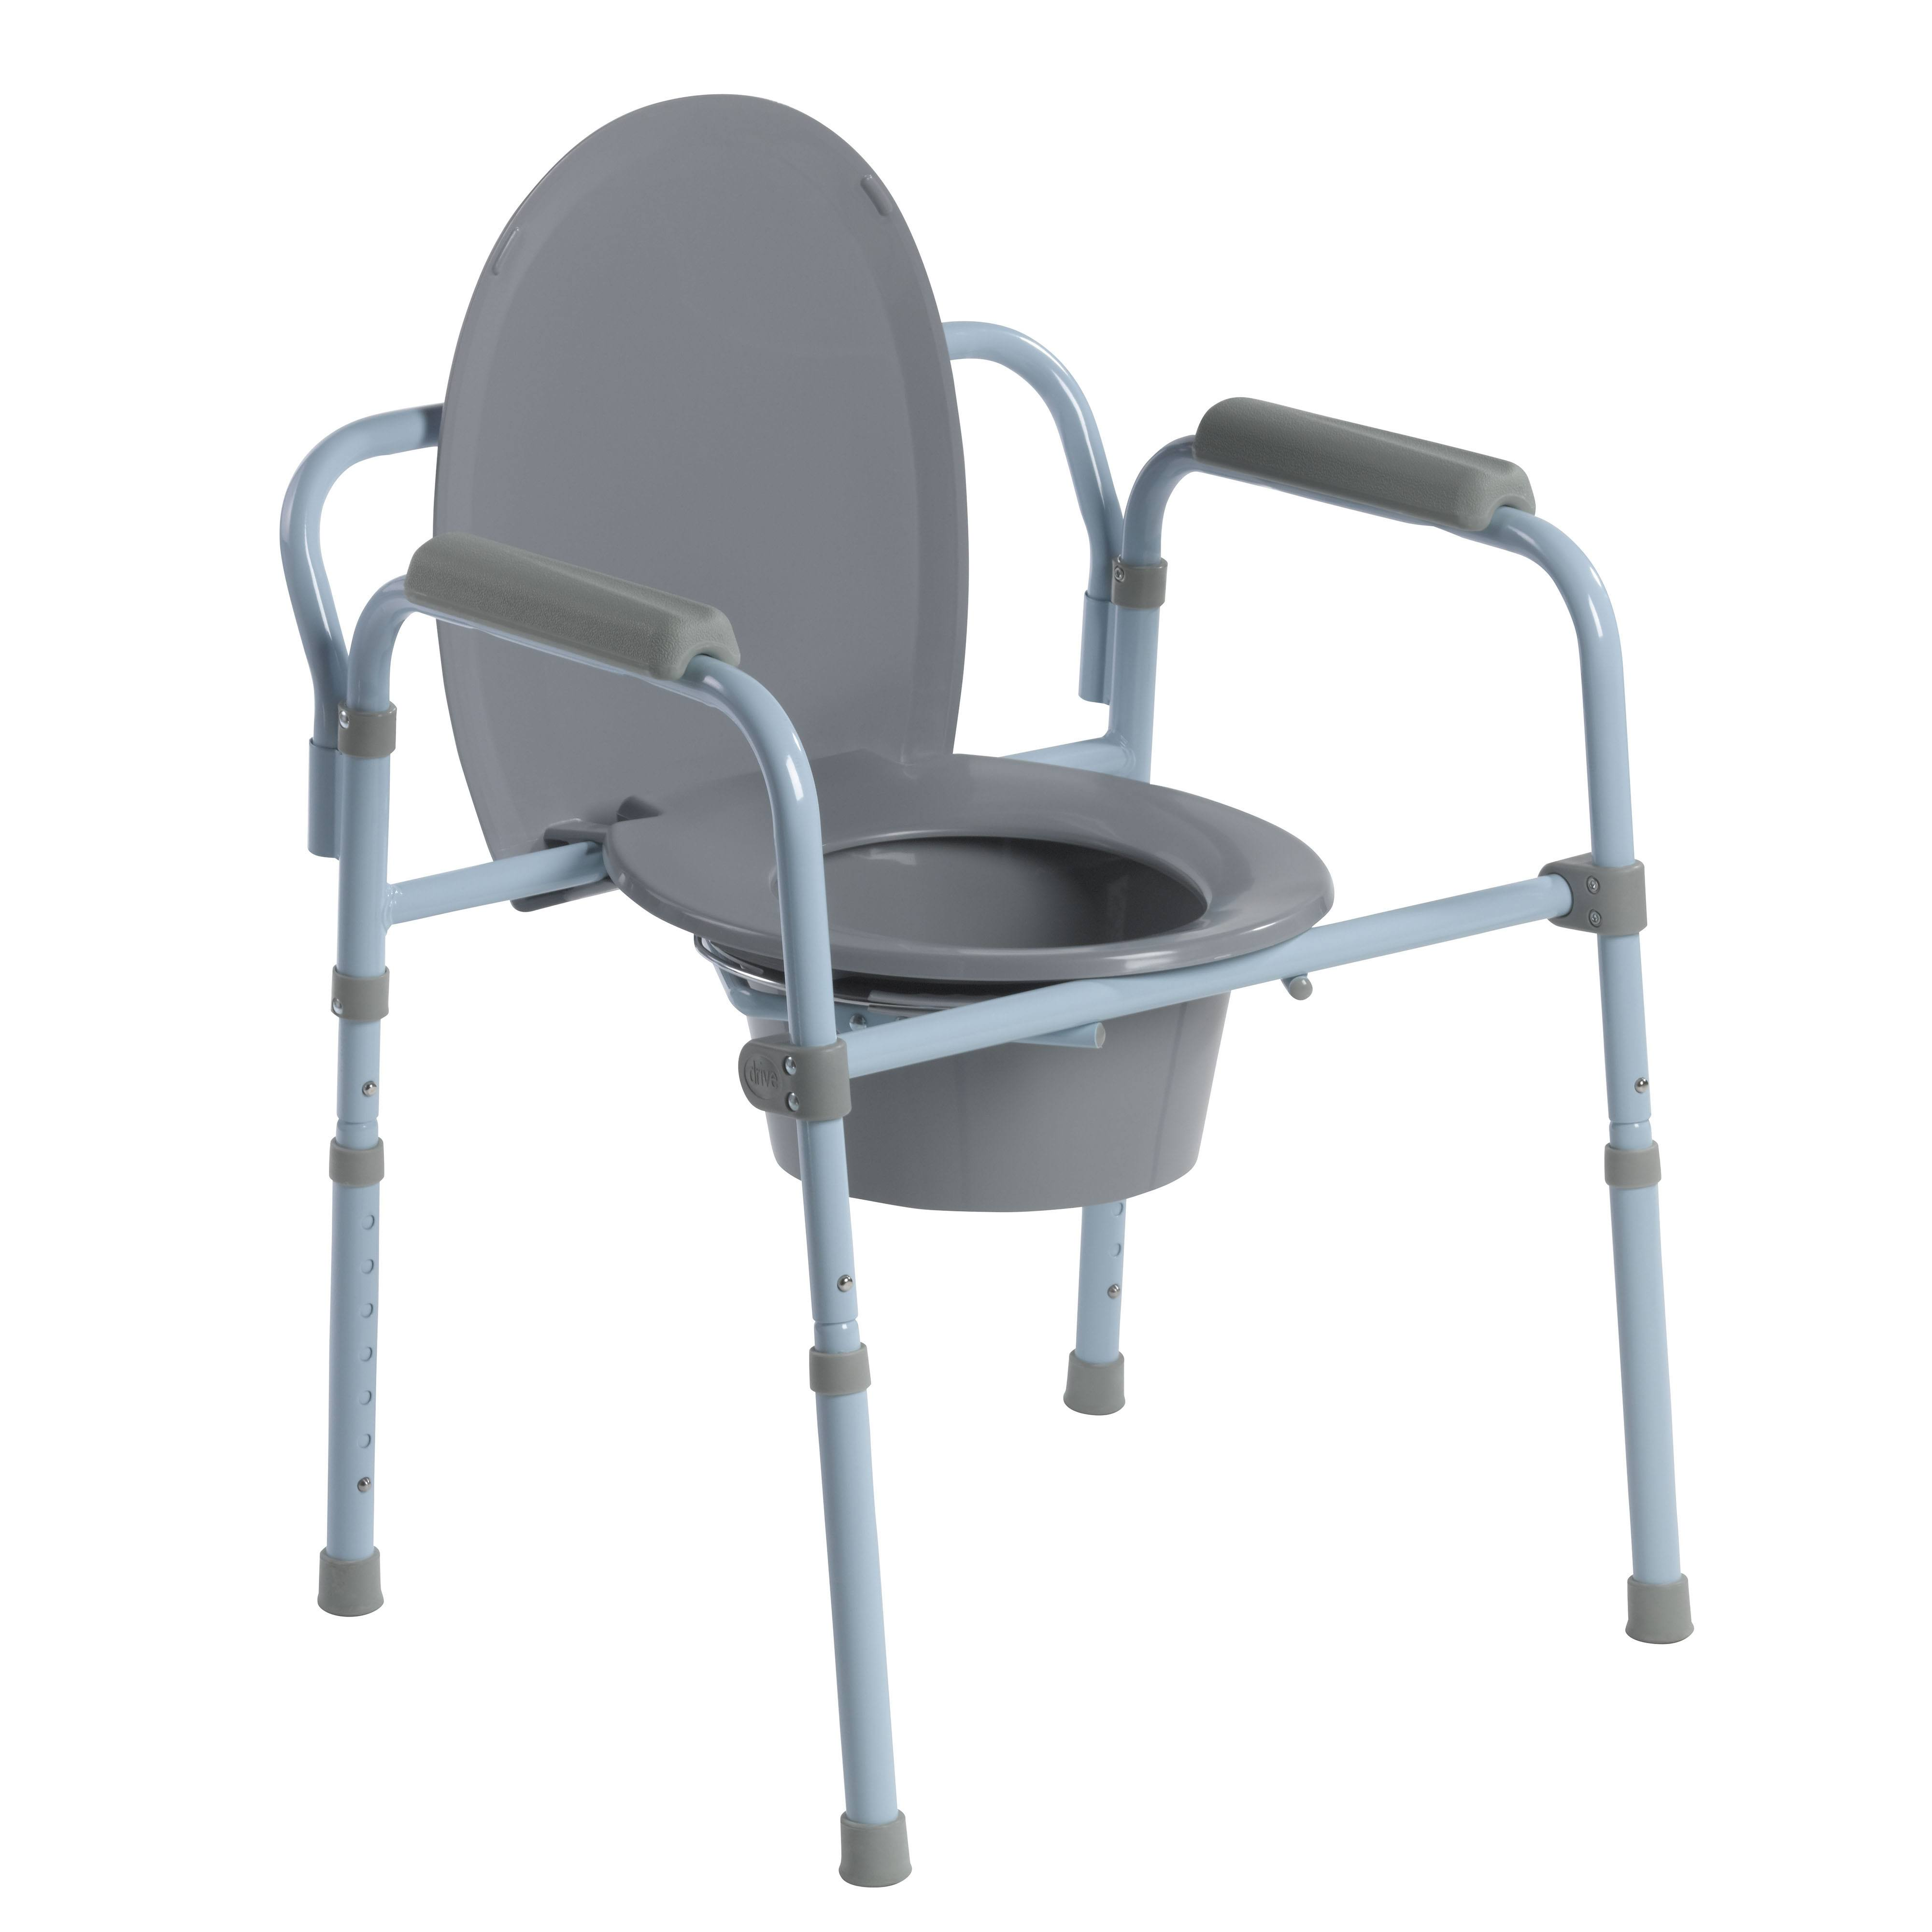 Drive Medical RTL11158KDR Steel Folding Frame Commode - Gray